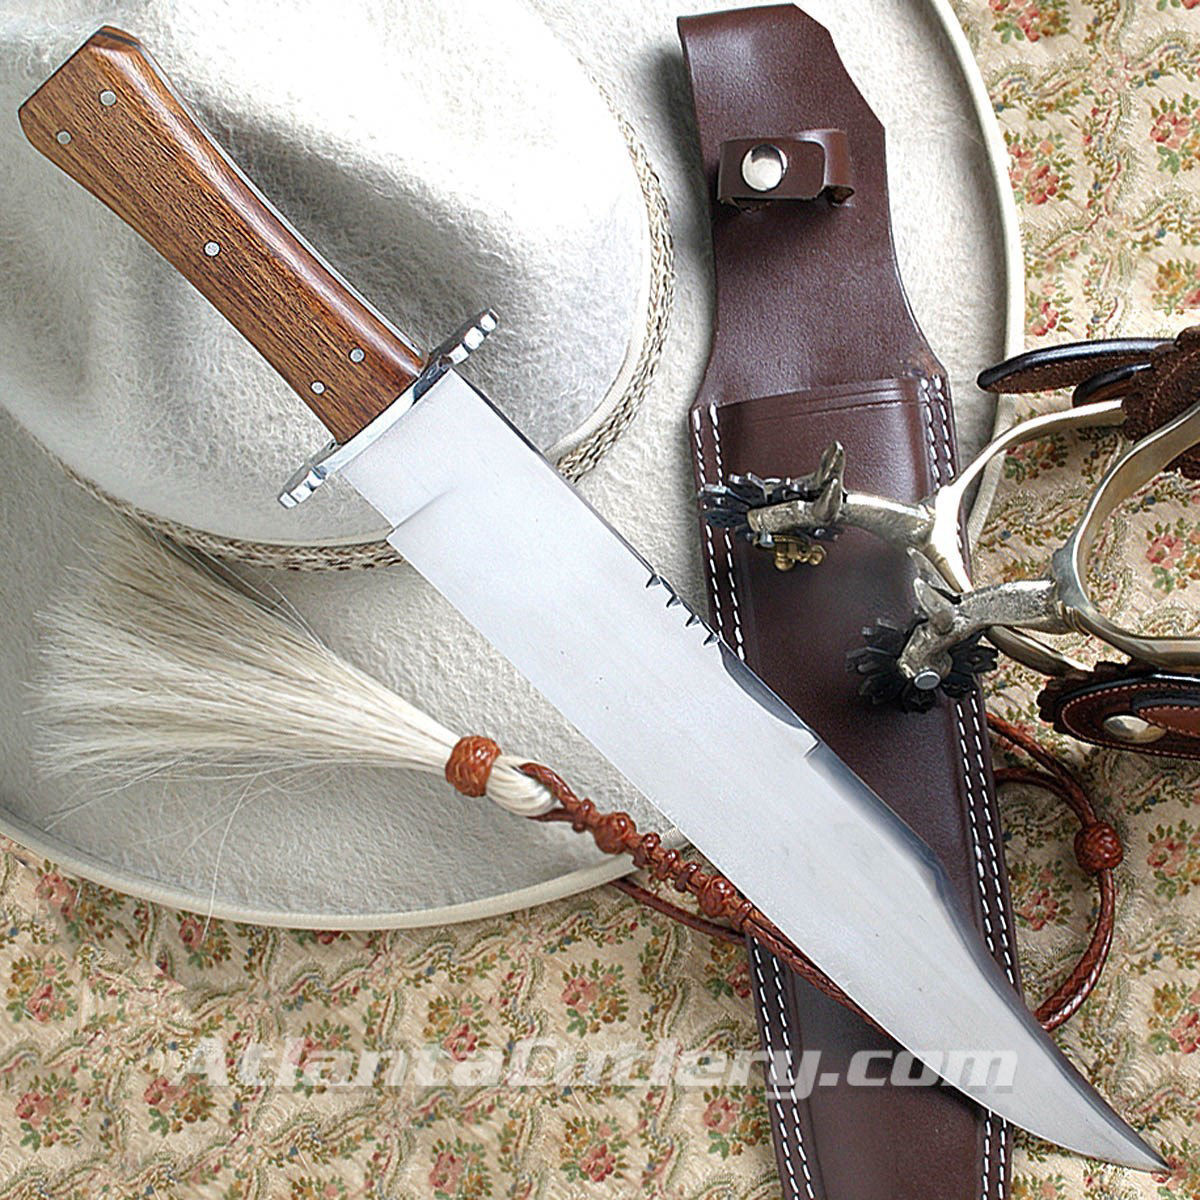 Hunter's Companion Bowie Knife with Sheath